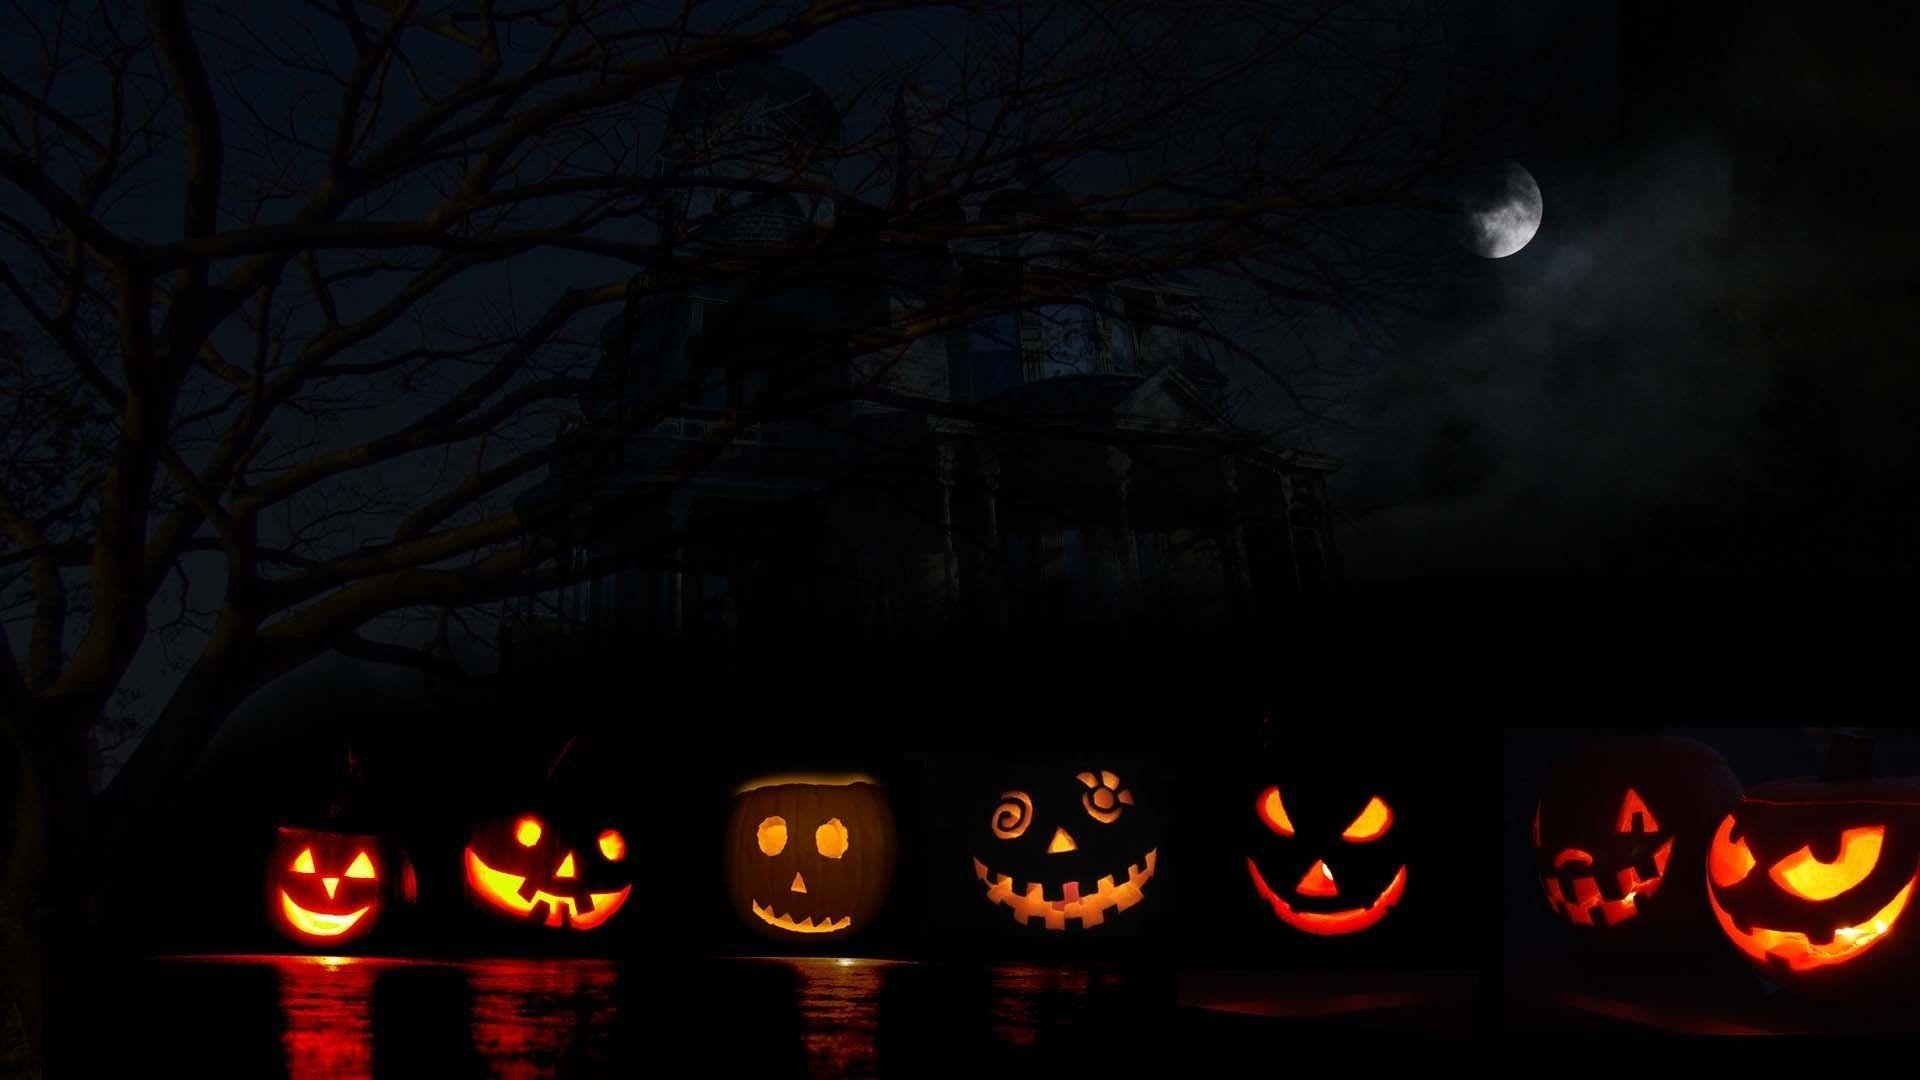 1920x1080 Halloween Pumpkin Carving Desktop Background | Desktop Backgrounds HQ